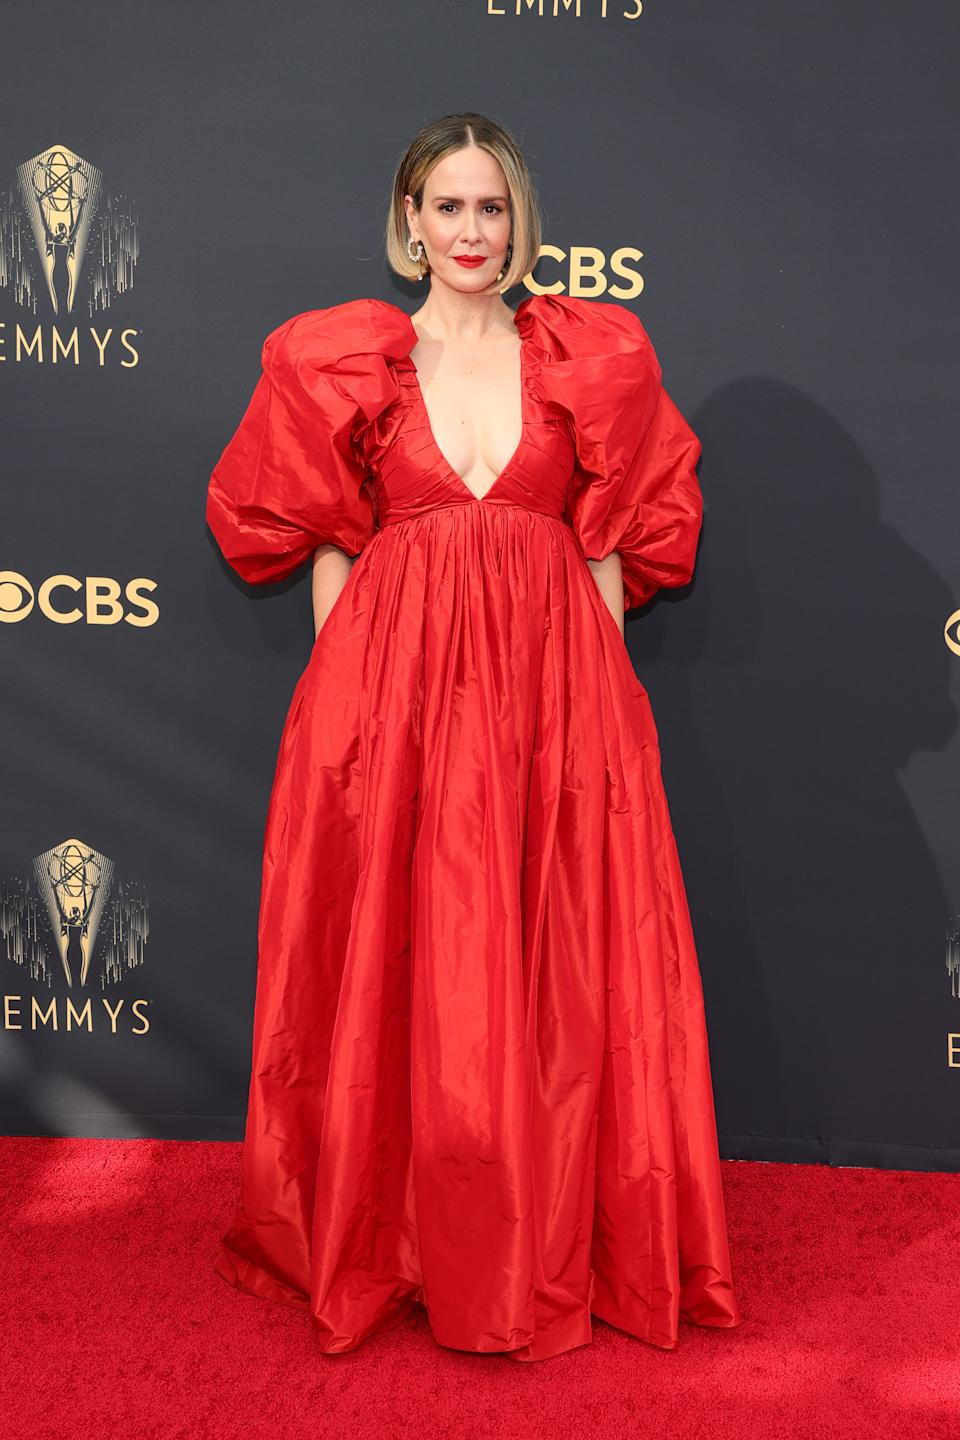 Sarah Paulson wears a red puff sleeve gown at the 73rd Primetime Emmy Awards at L.A. LIVE on September 19, 2021 in Los Angeles, California. (Photo by Rich Fury/Getty Images)